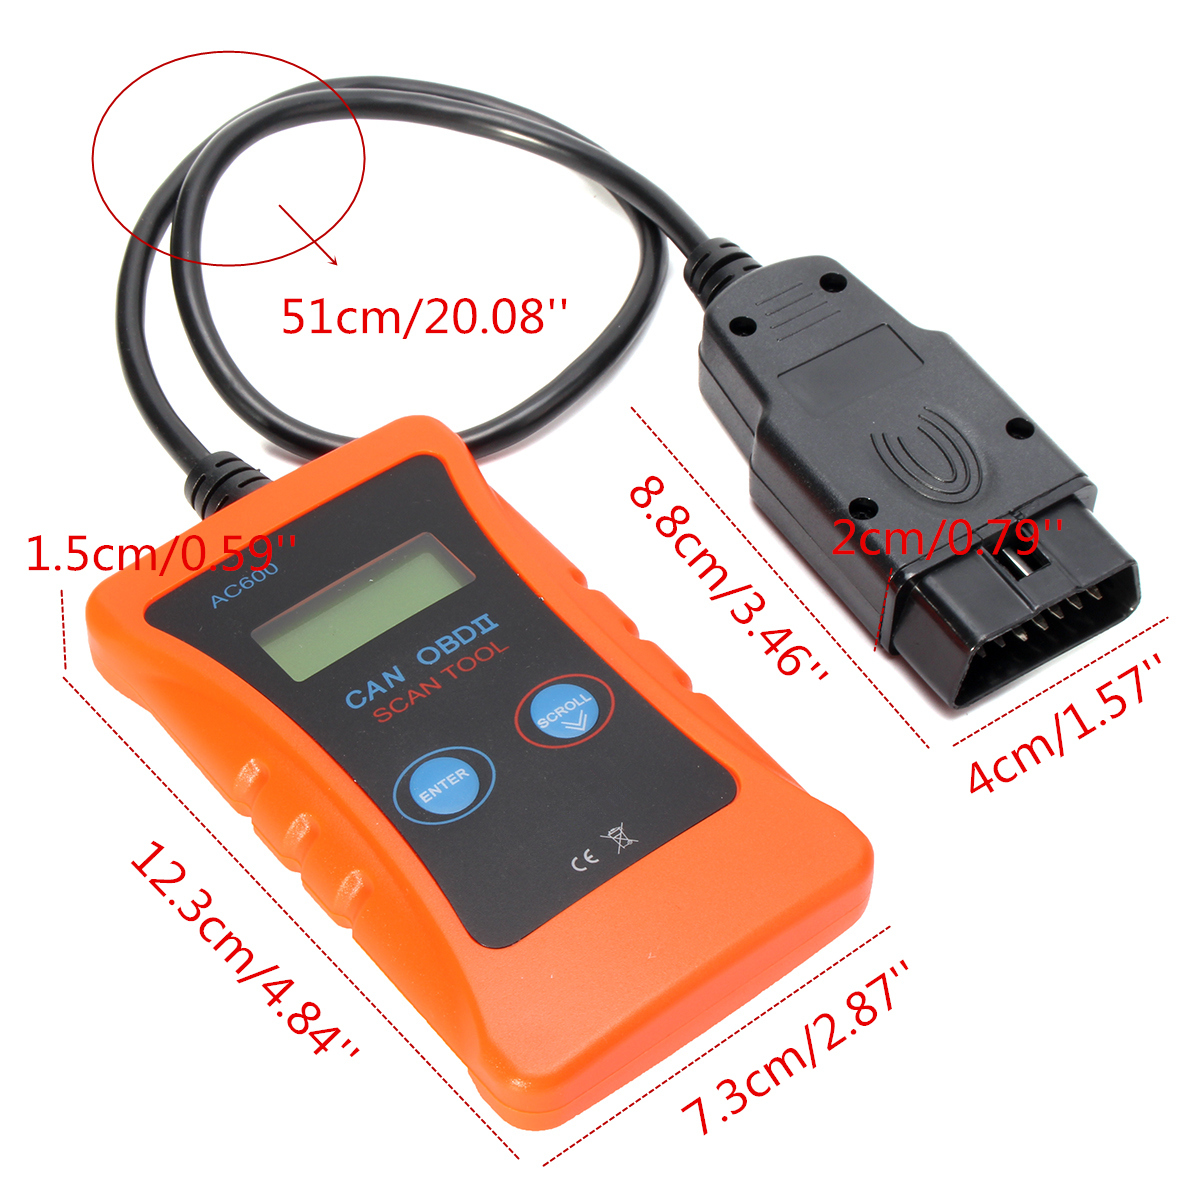 AC600 OBD2 OBDII Car Fault Diagnostic Scanner Tool Handheld Kit